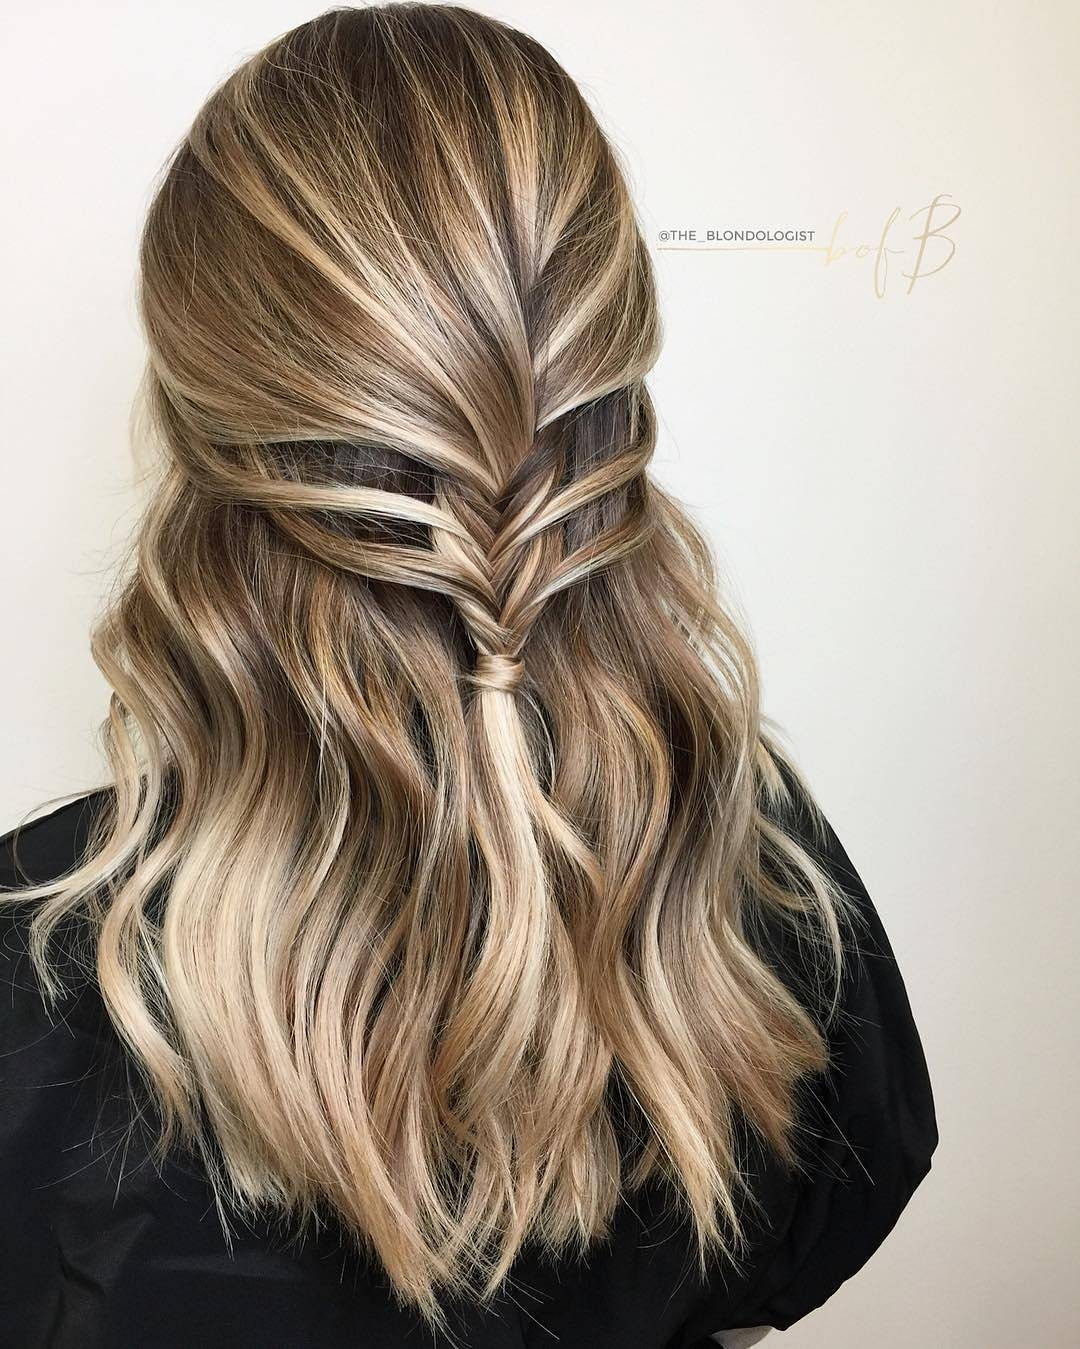 10 Hair Color Ideas For Blondes: 10 Blonde Balayage Hair Color Ideas In Beige Gold Silver